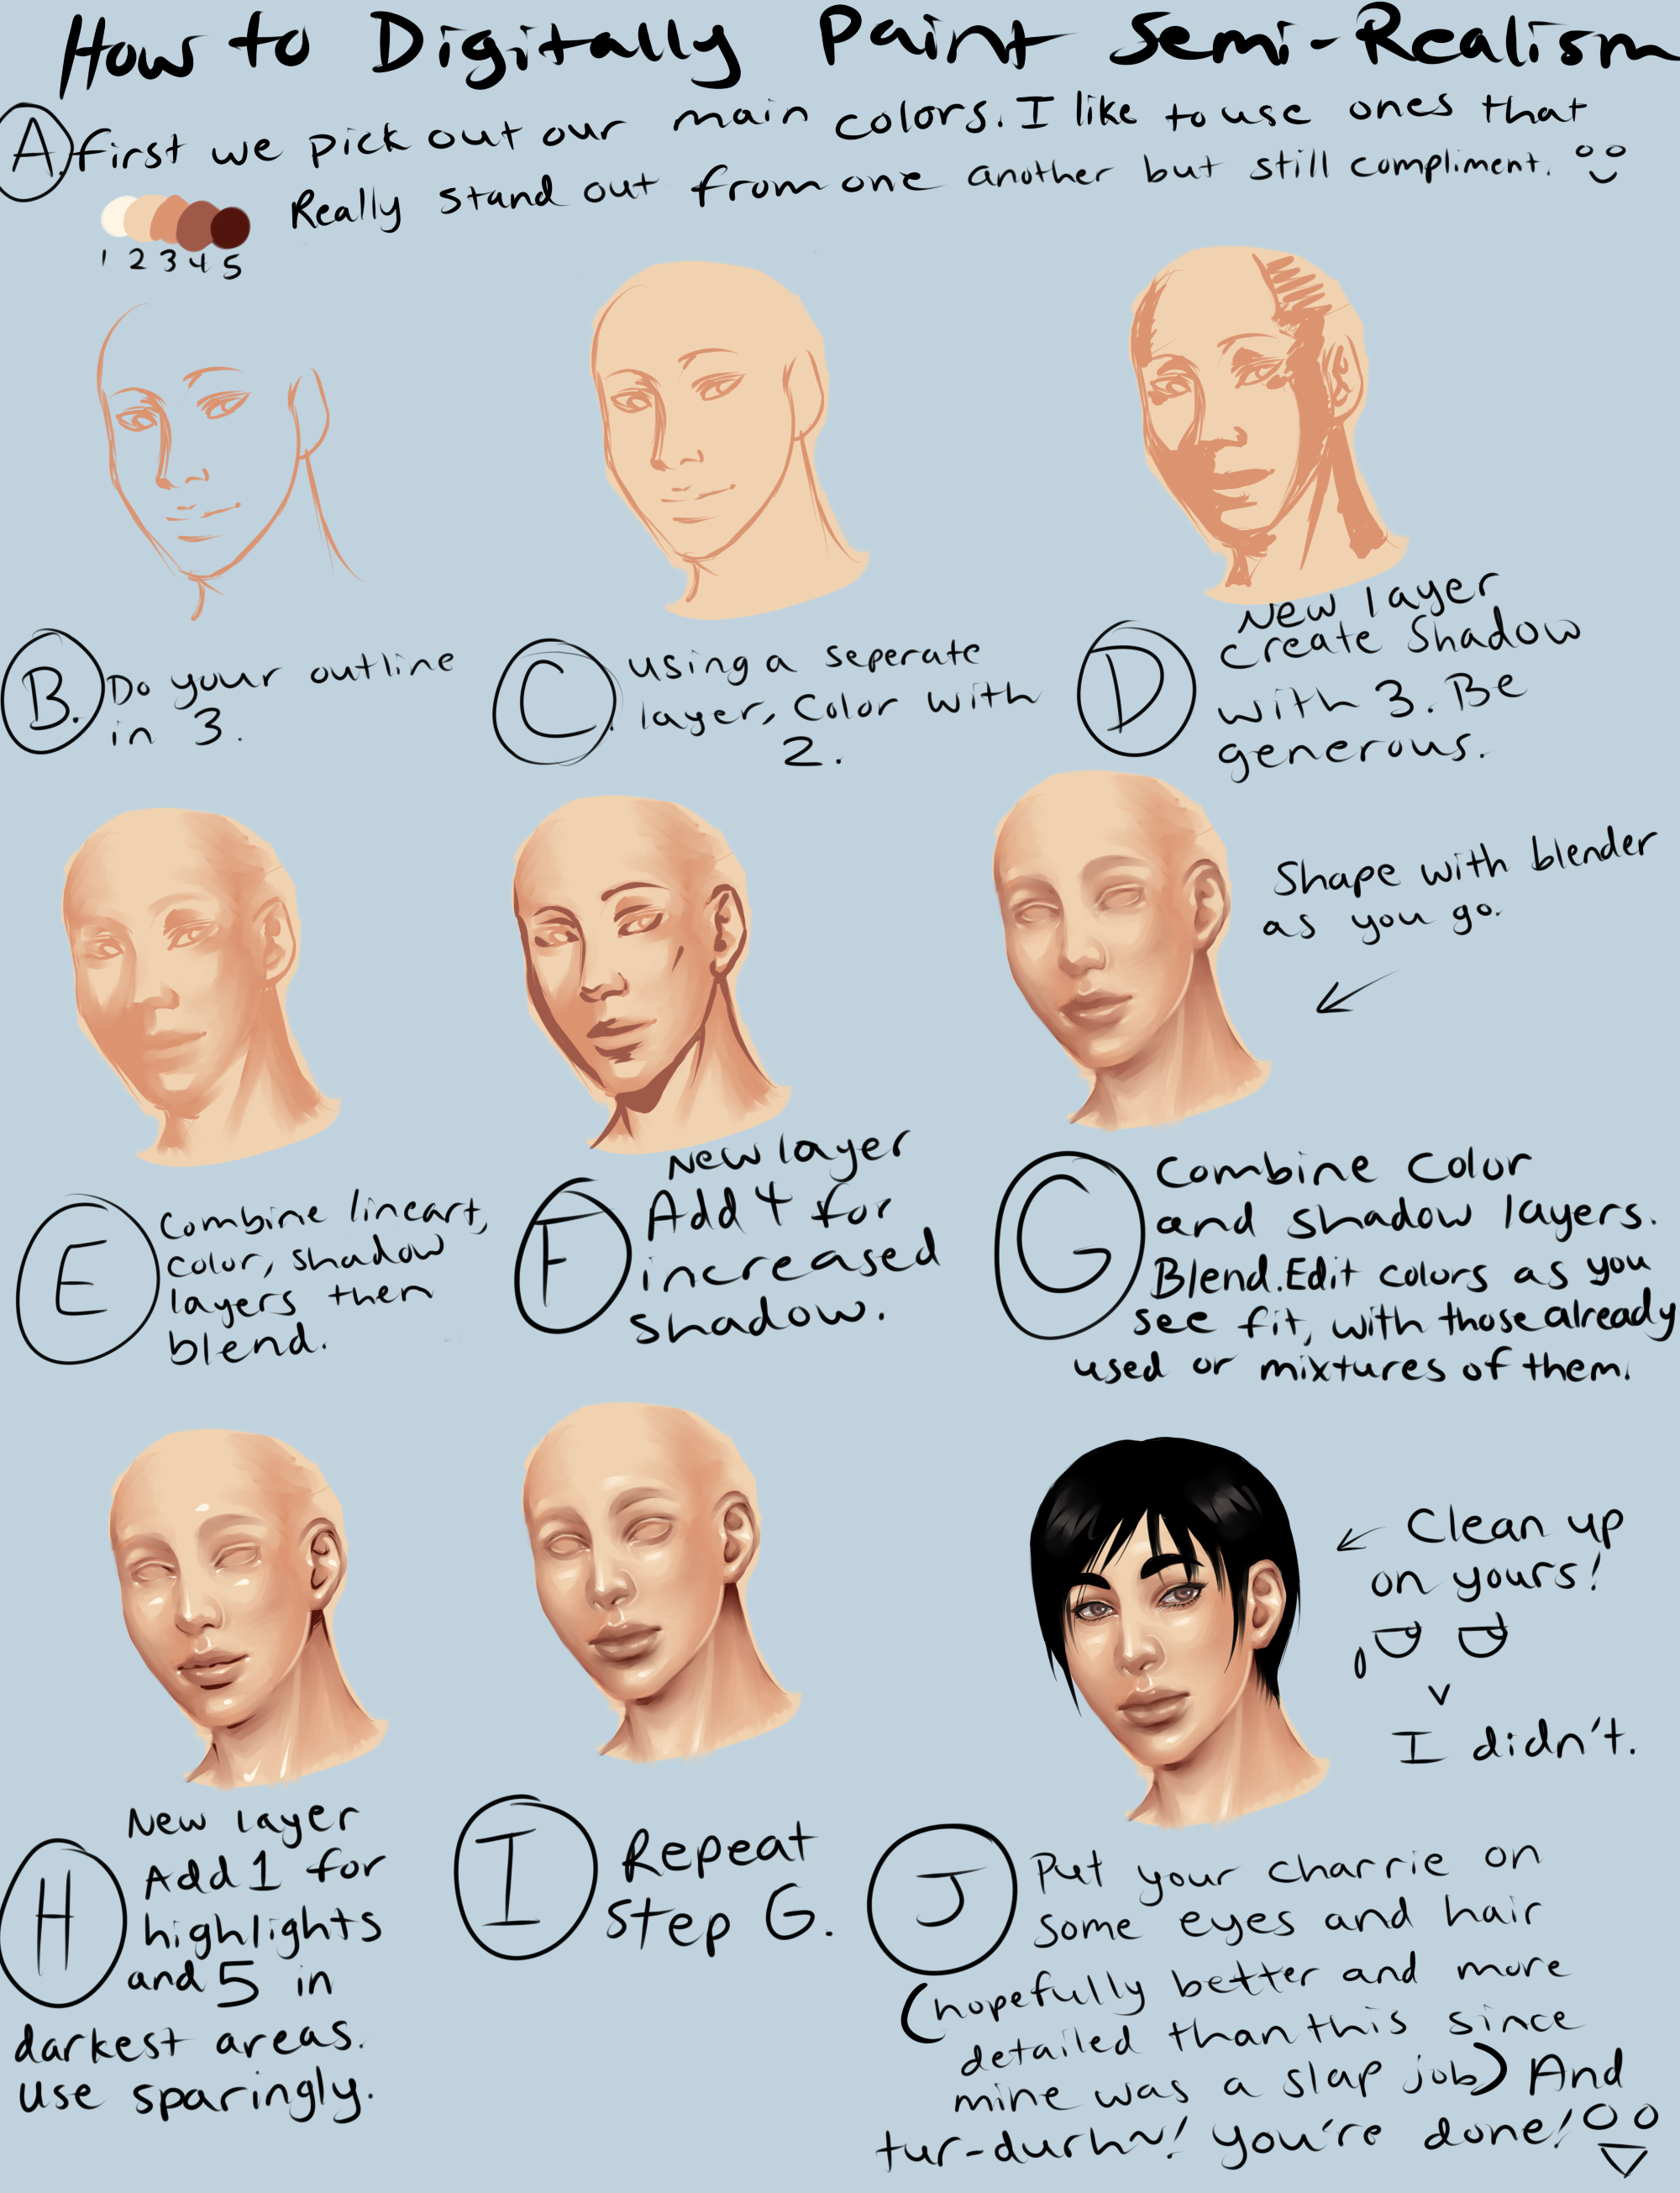 digital semi realism skin tutorial by thecomicstream deviantart com